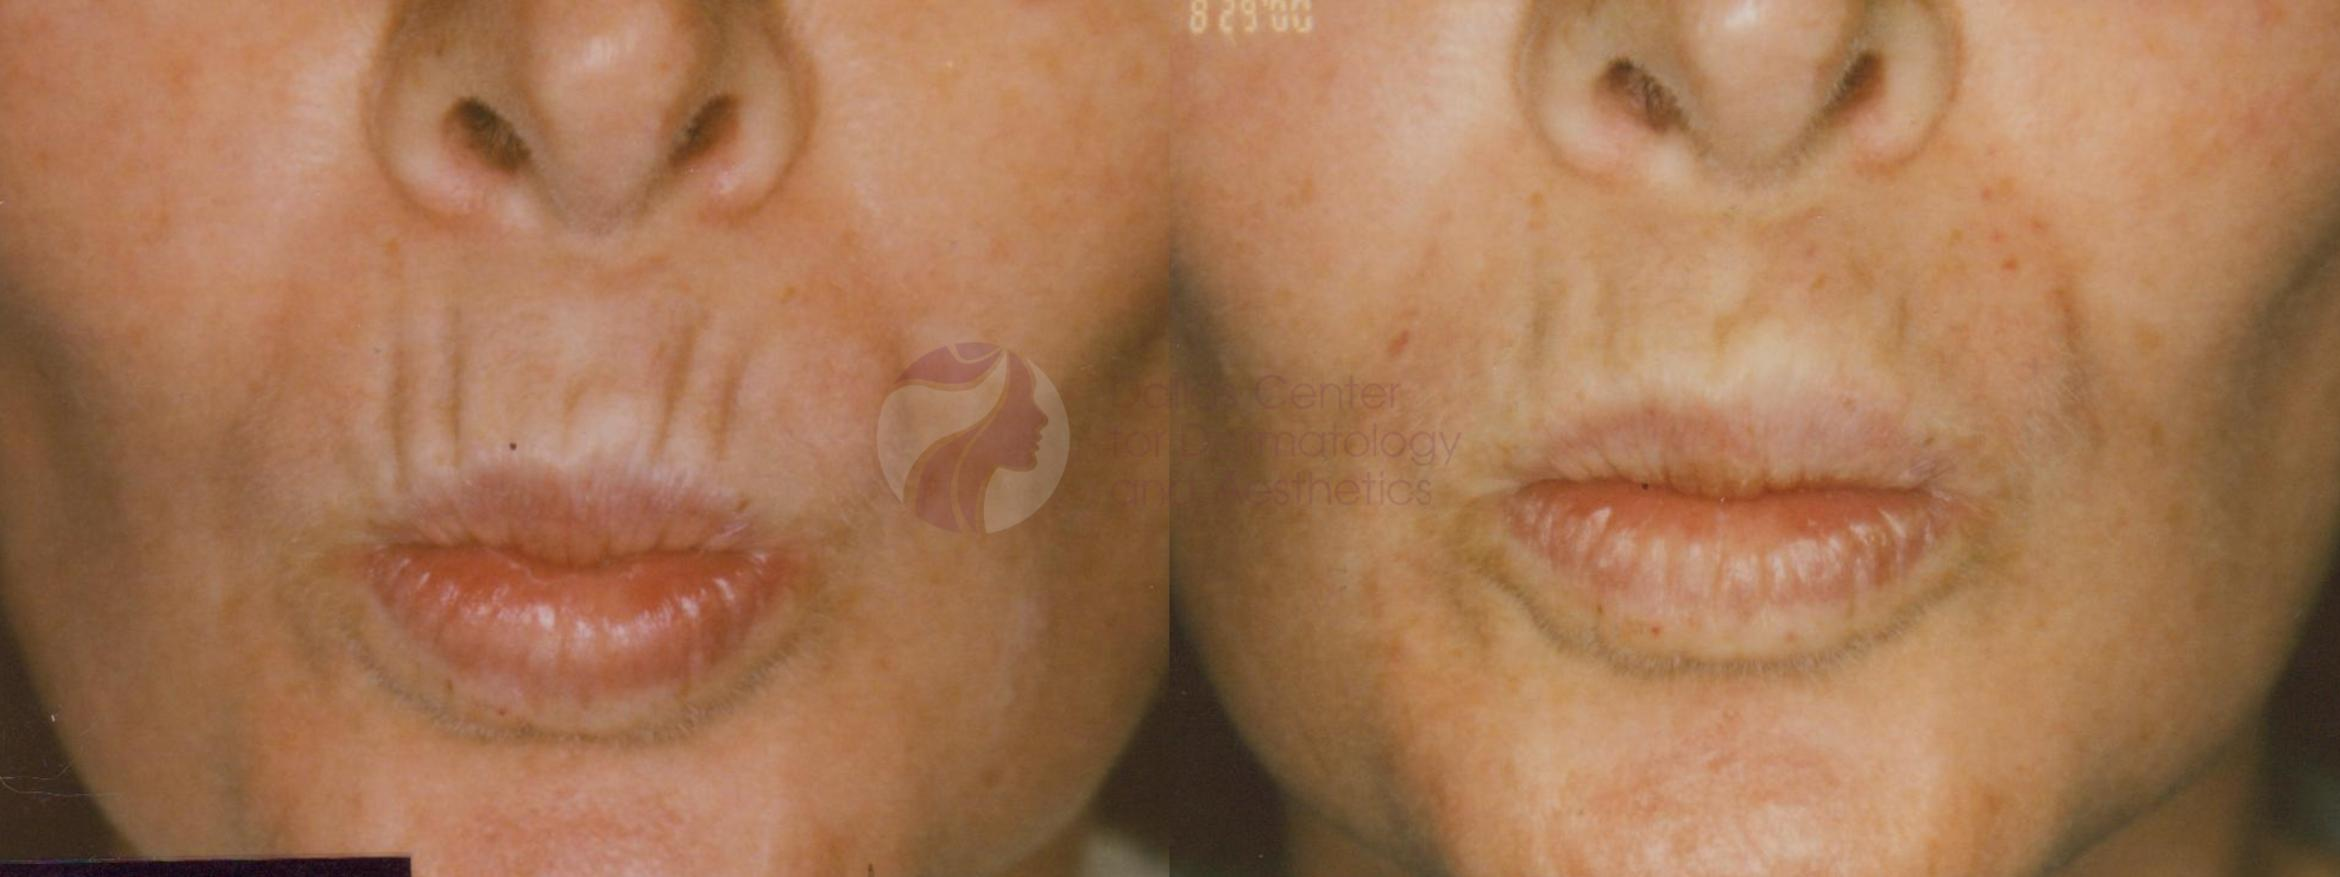 BOTOX® Cosmetic & Dysport® Case 31 Before & After View #1 | Dallas, TX | Dallas Center for Dermatology and Aesthetics